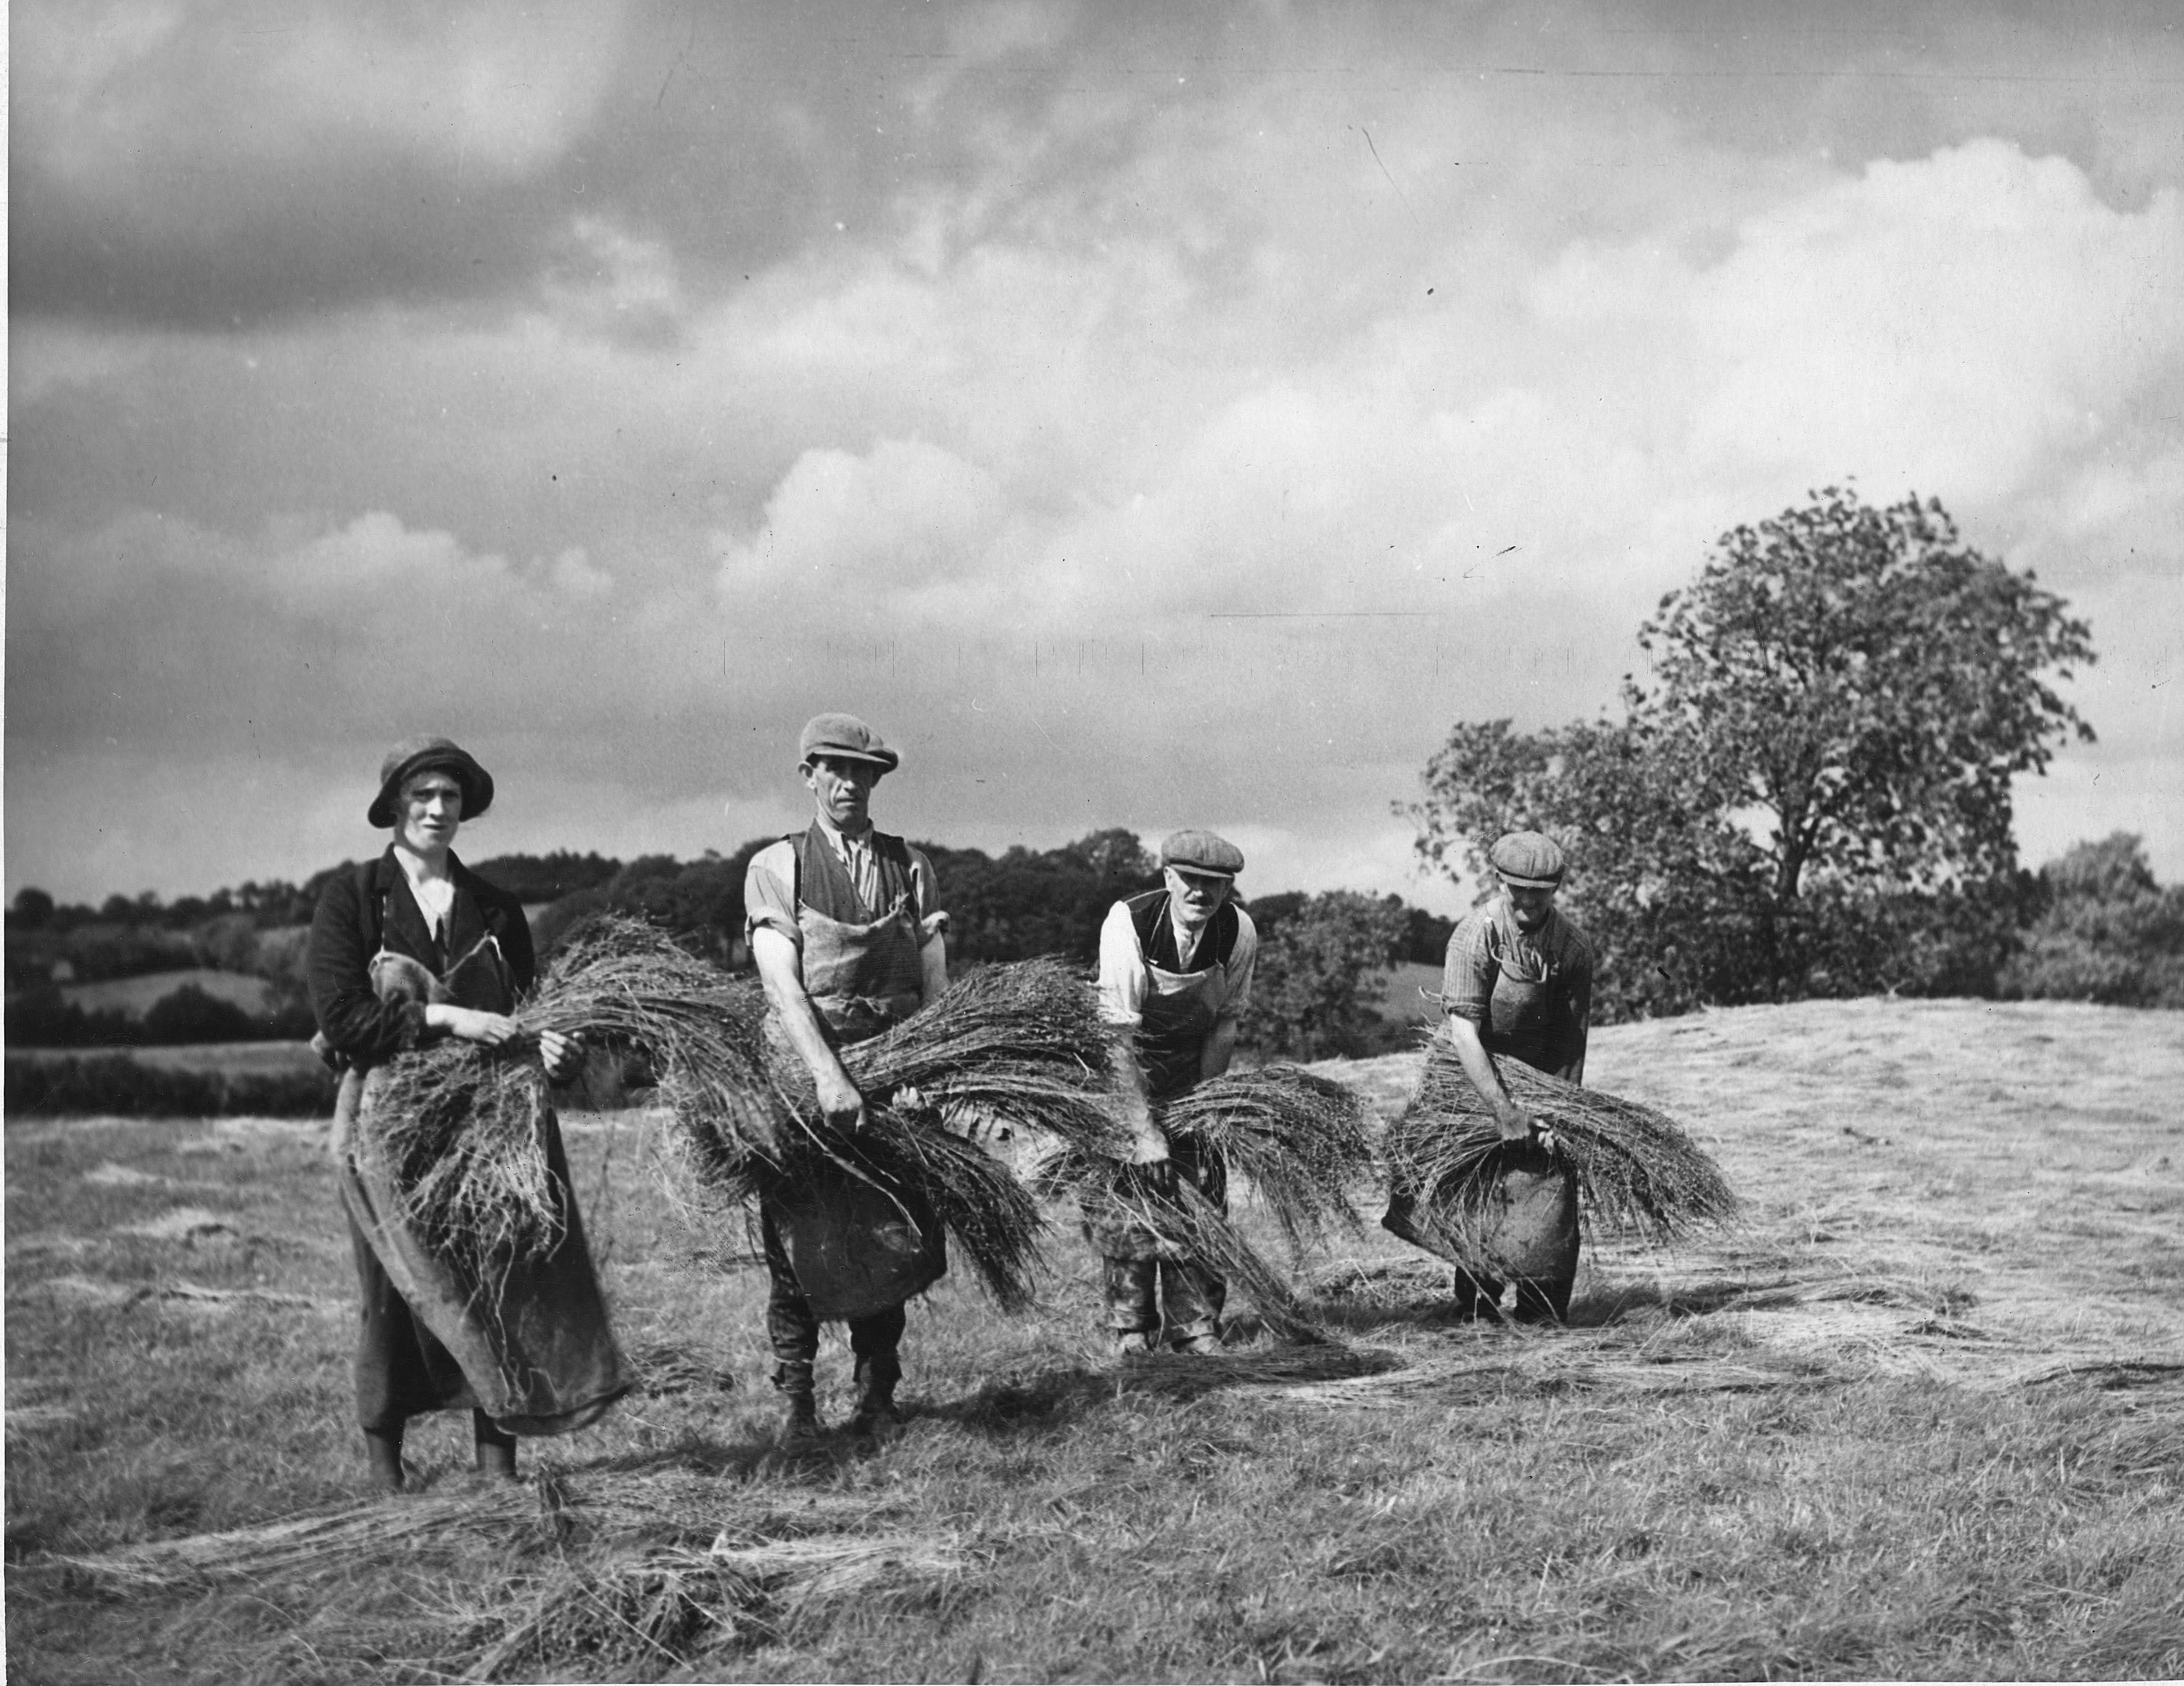 Irish Farm Workers Lay Out Flax to be Field Retted, circa 1940